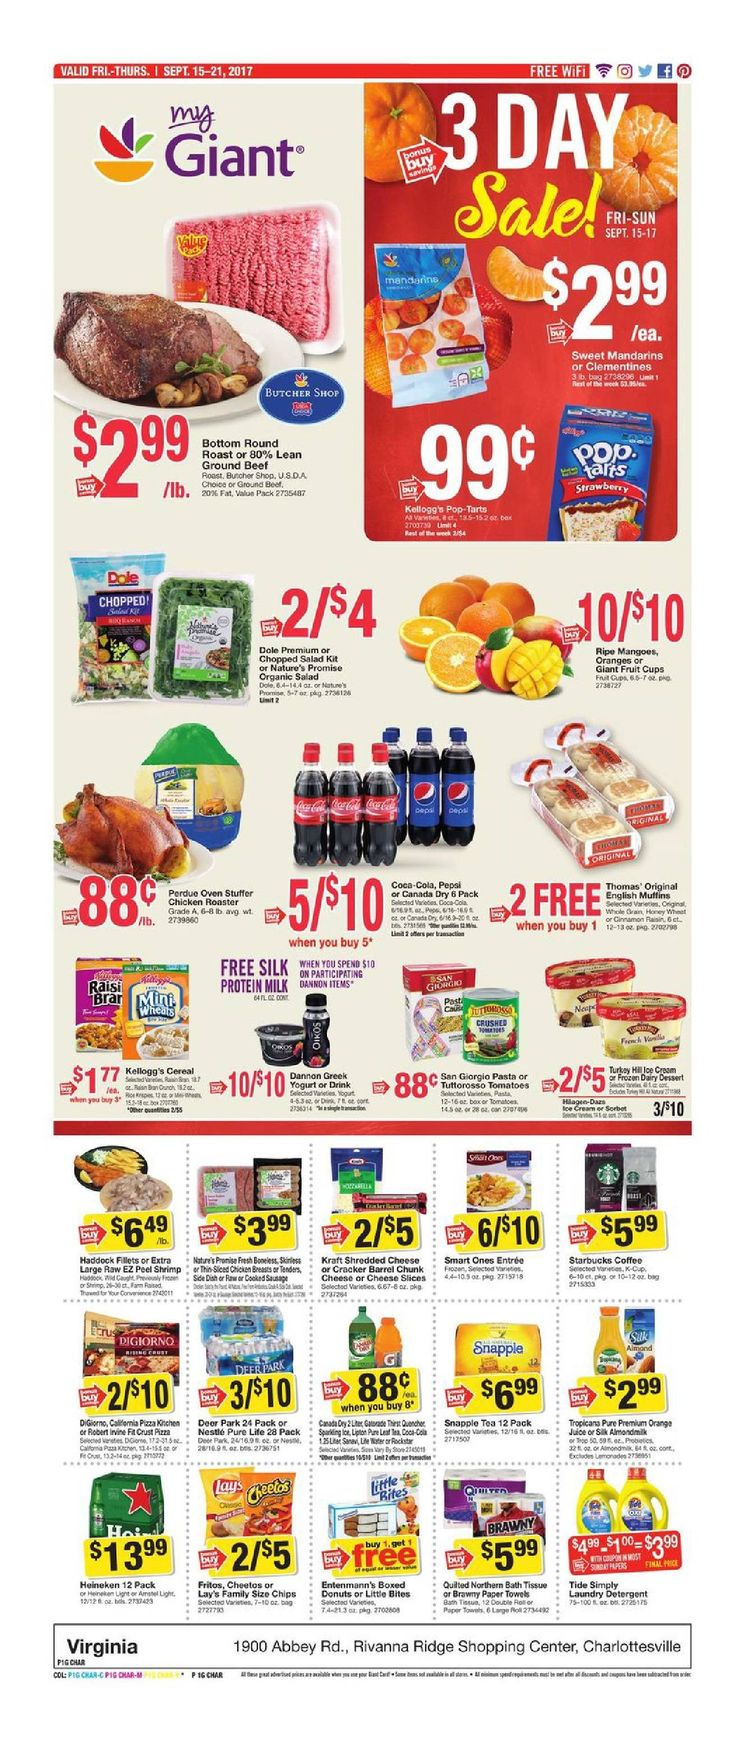 Giant Food Weekly Ad September 15 - 21, 2017 - http://www.olcatalog.com/grocery/giant-food-weekly-ad.html